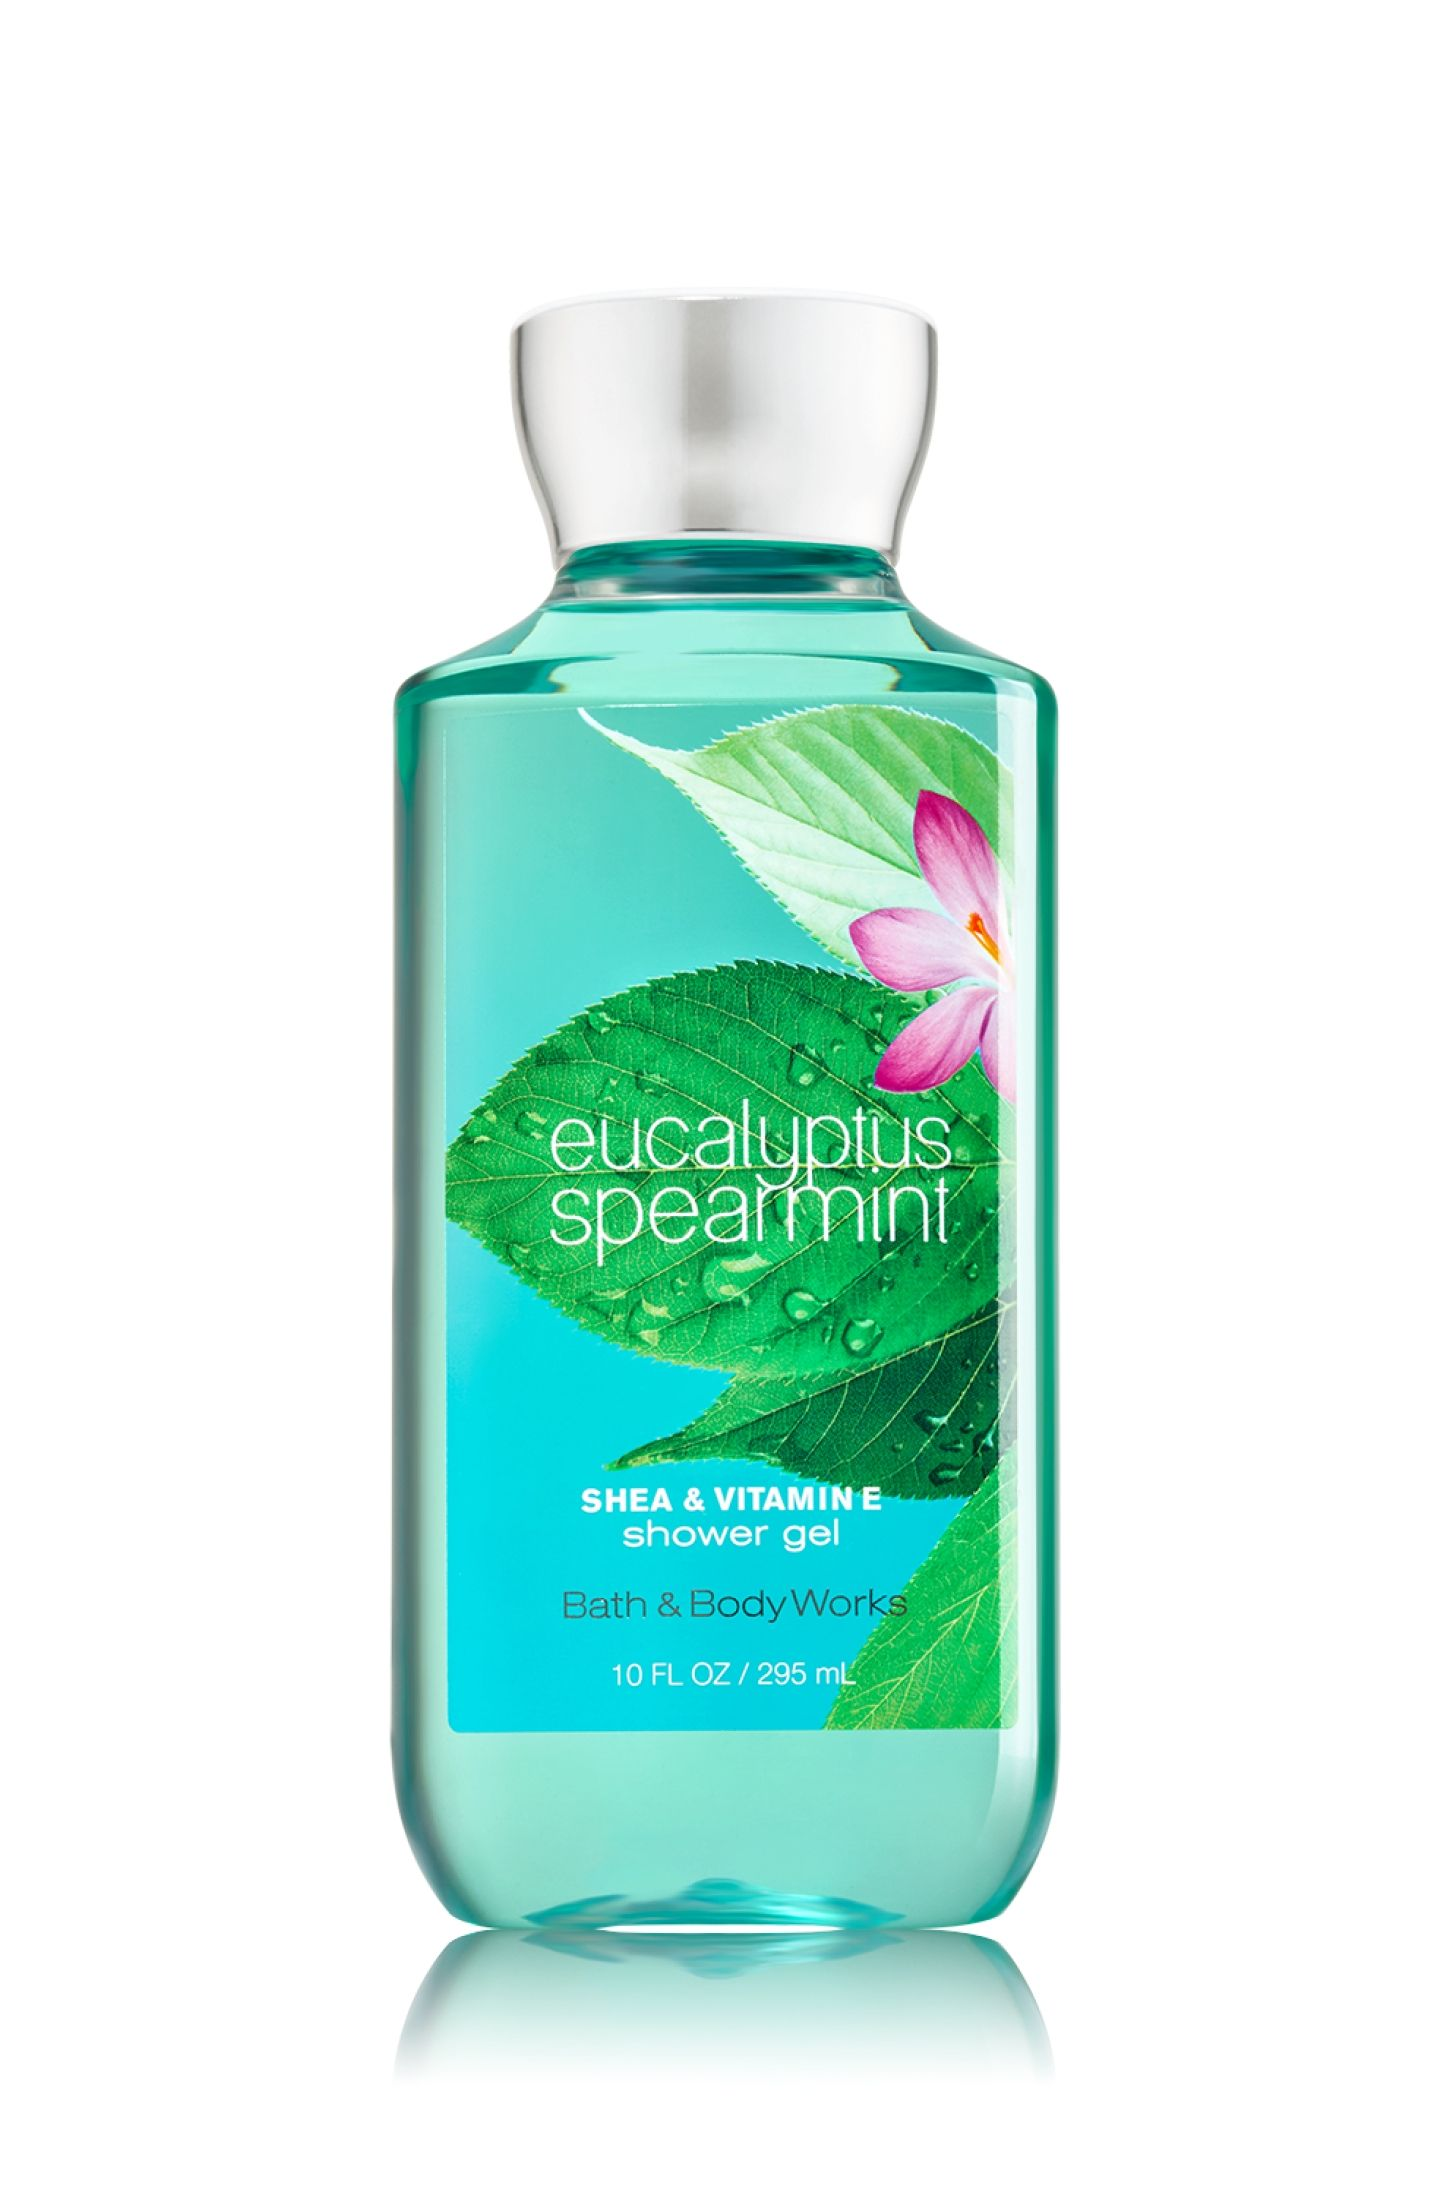 eucalyptus spearmint shower gel signature collection bath u0026 body works inspired by a